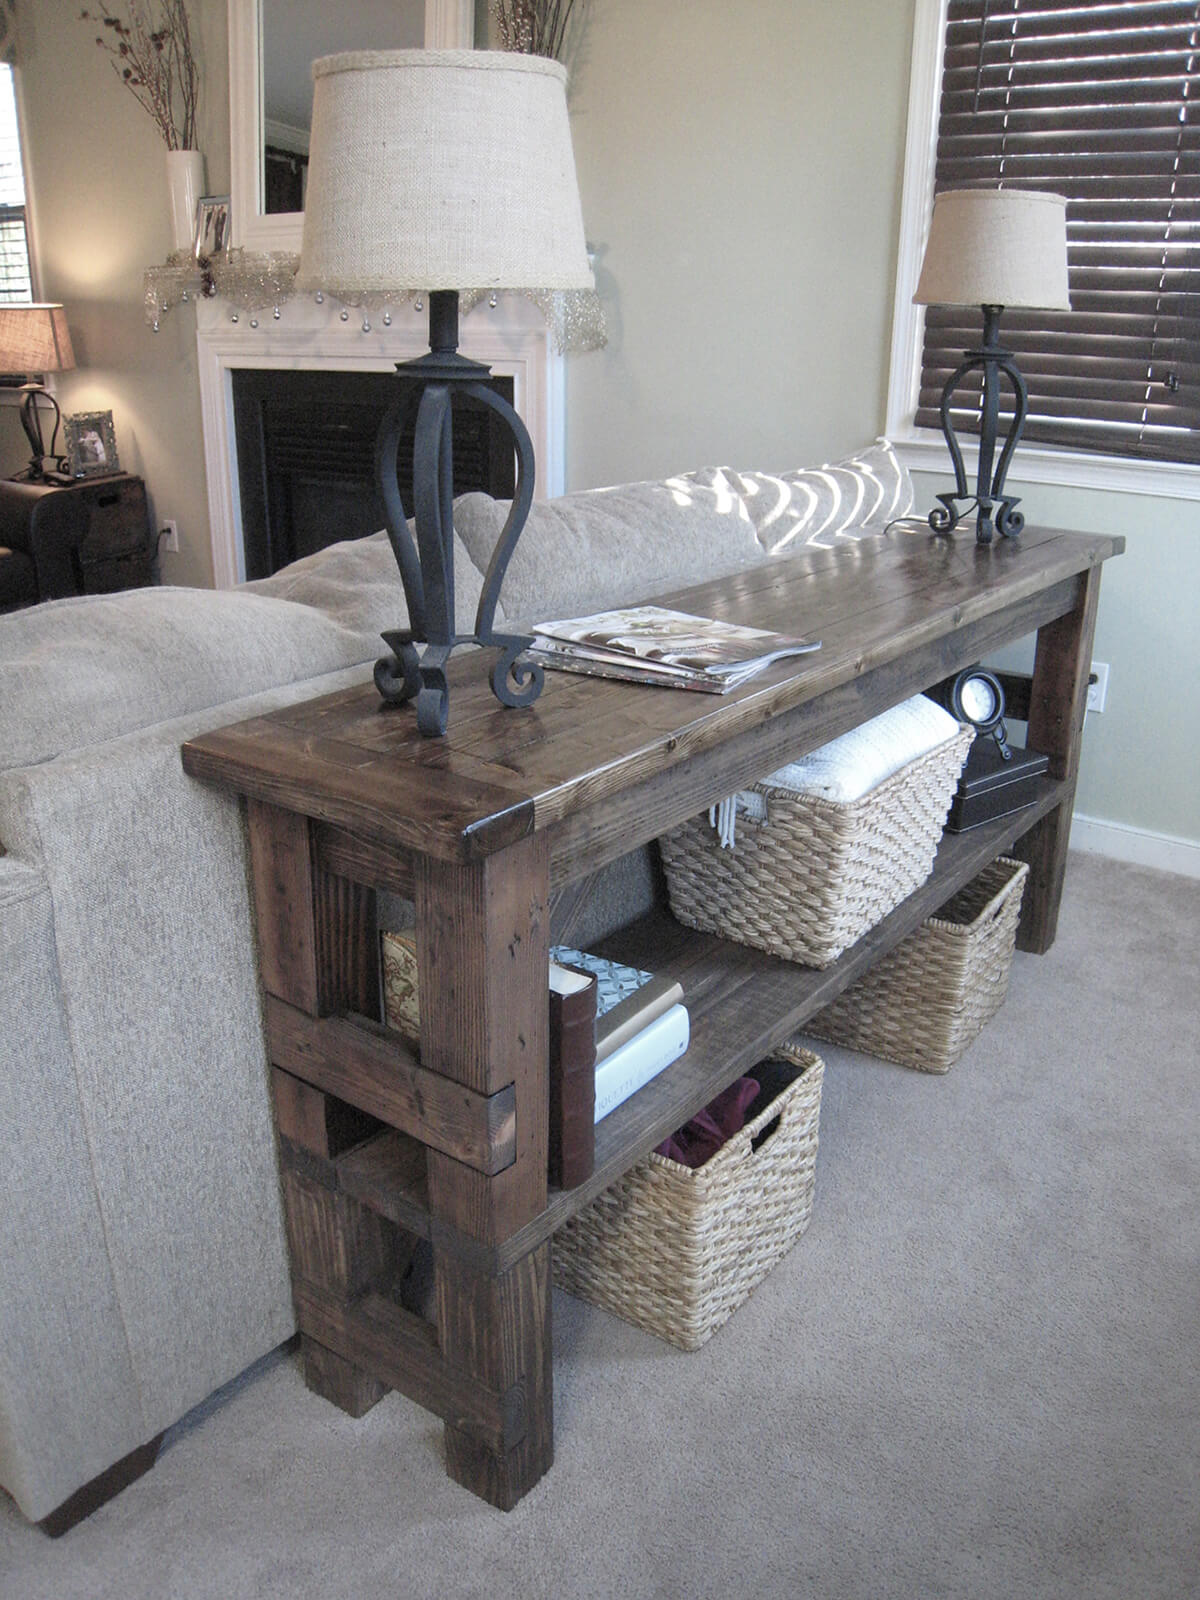 Refitted Block Style Wooden Table